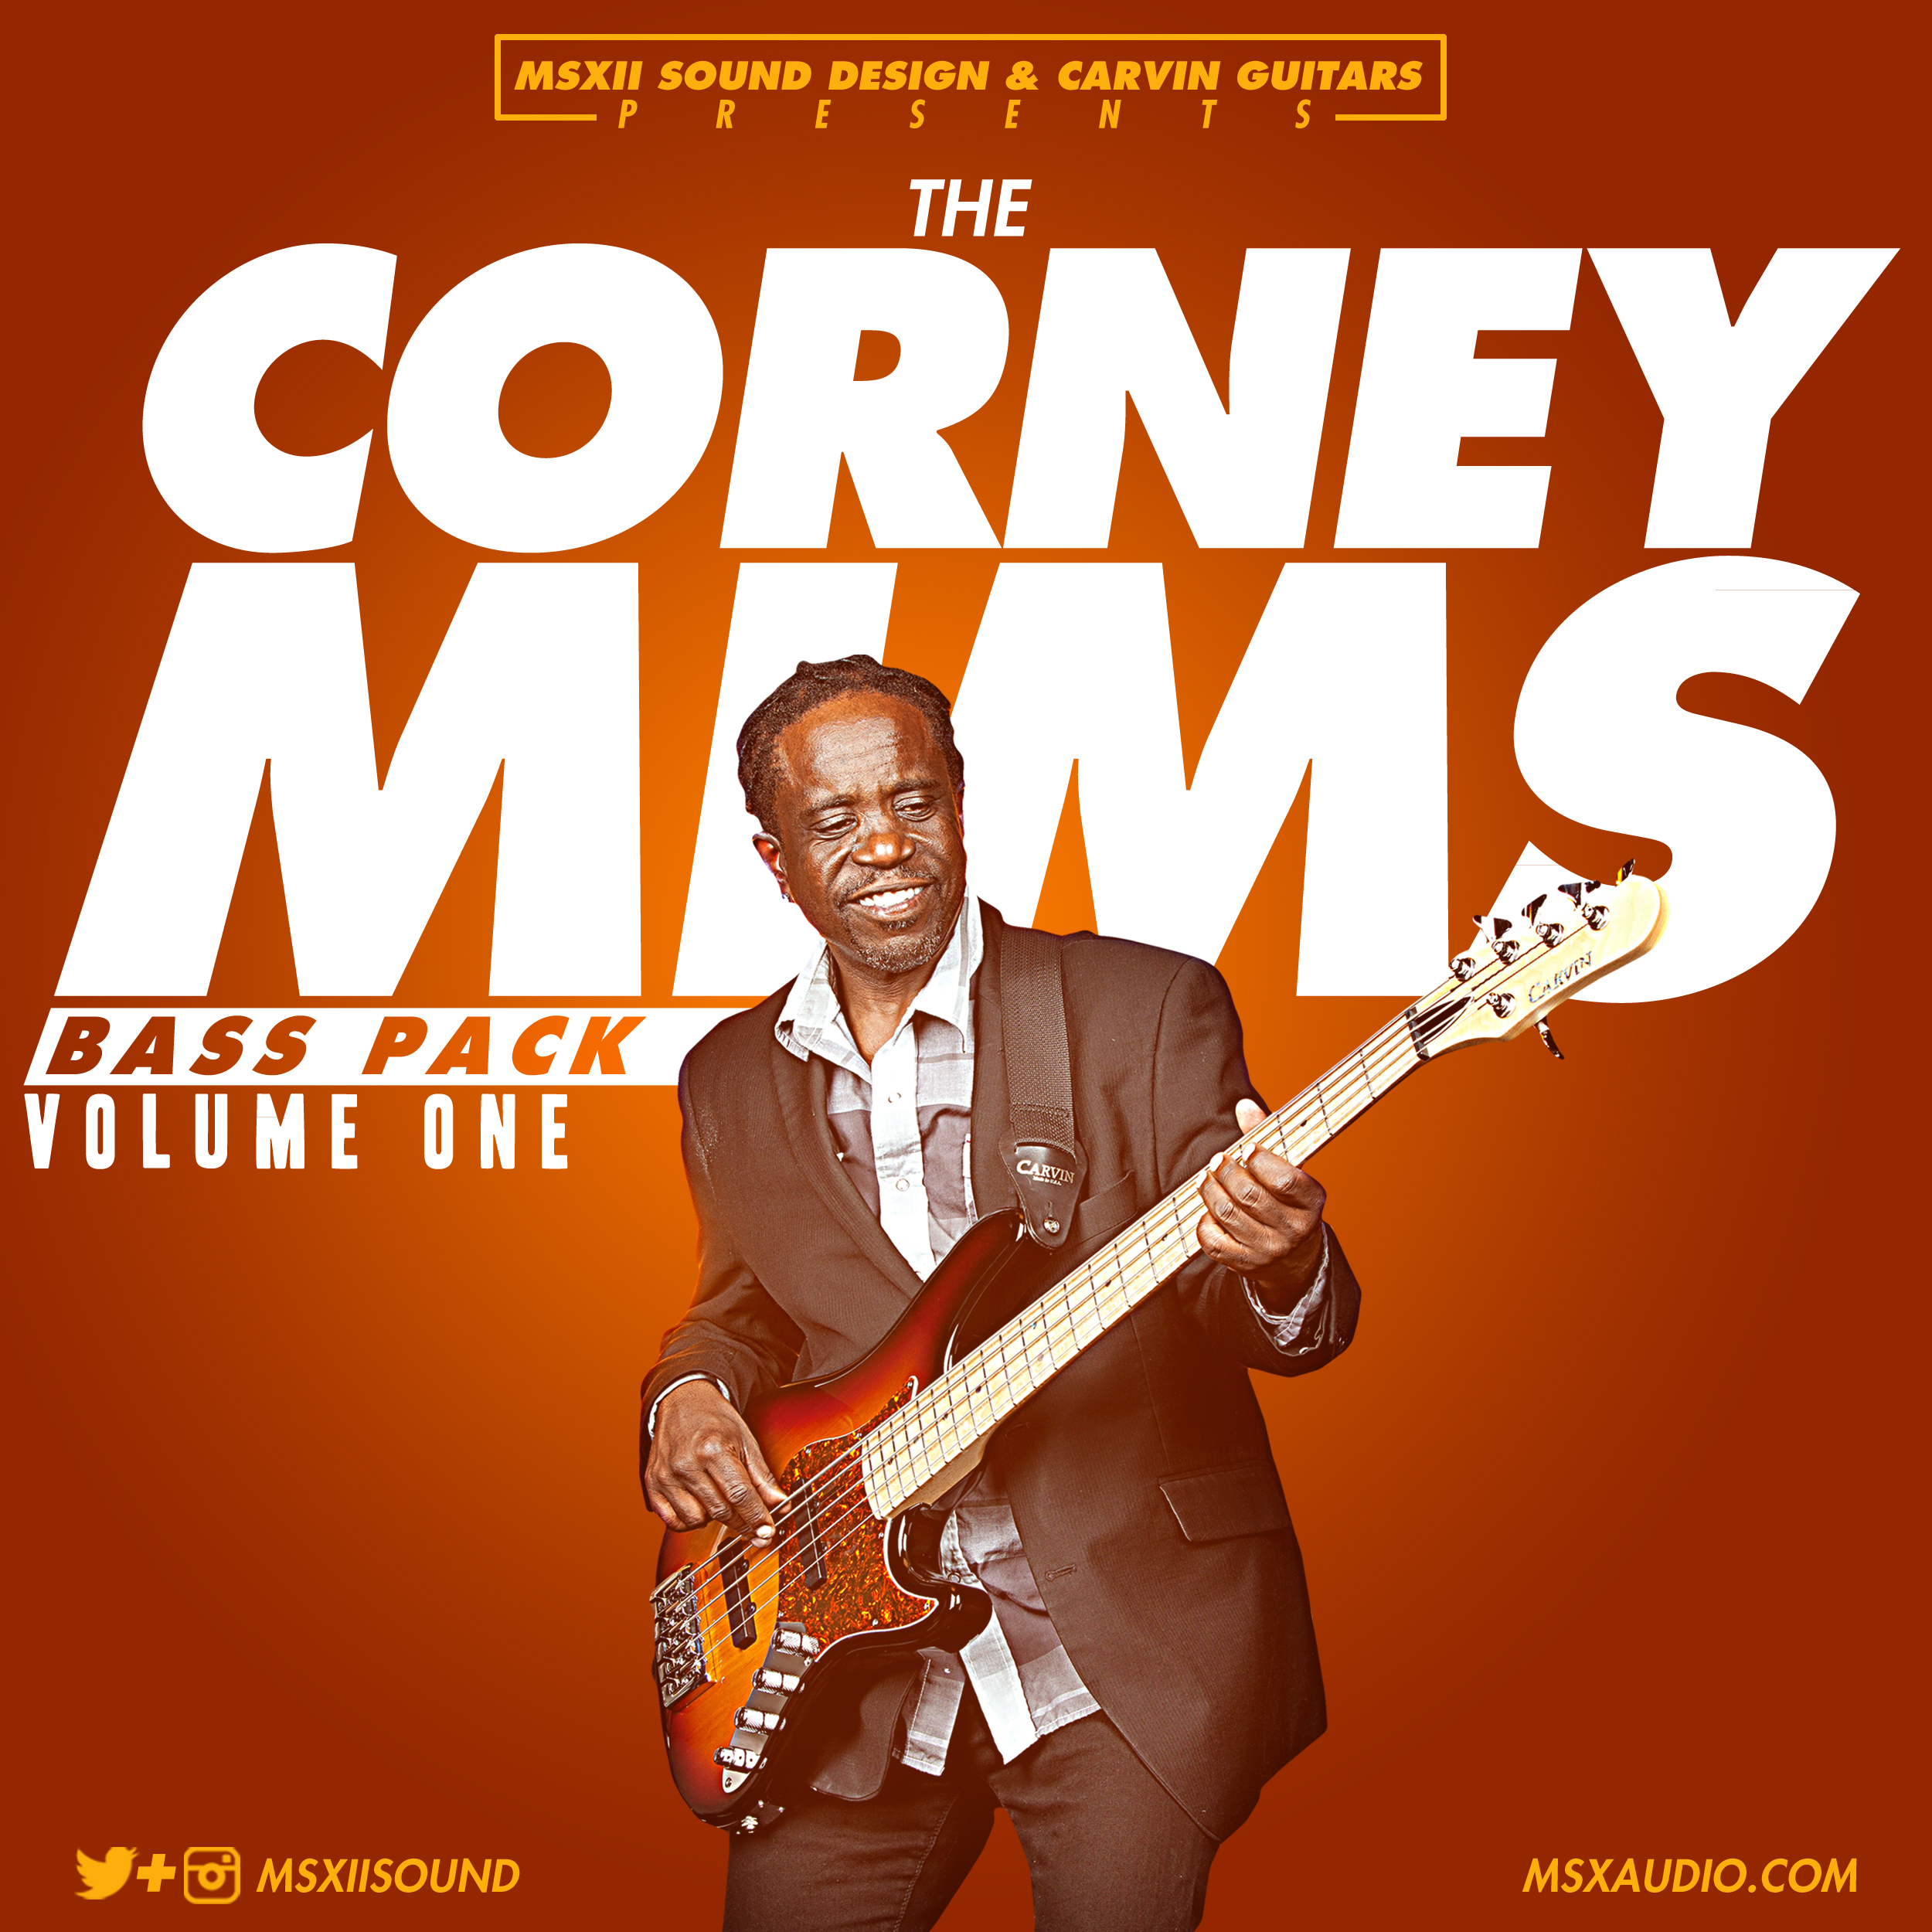 MSXII-Corney Mims Bass Pack